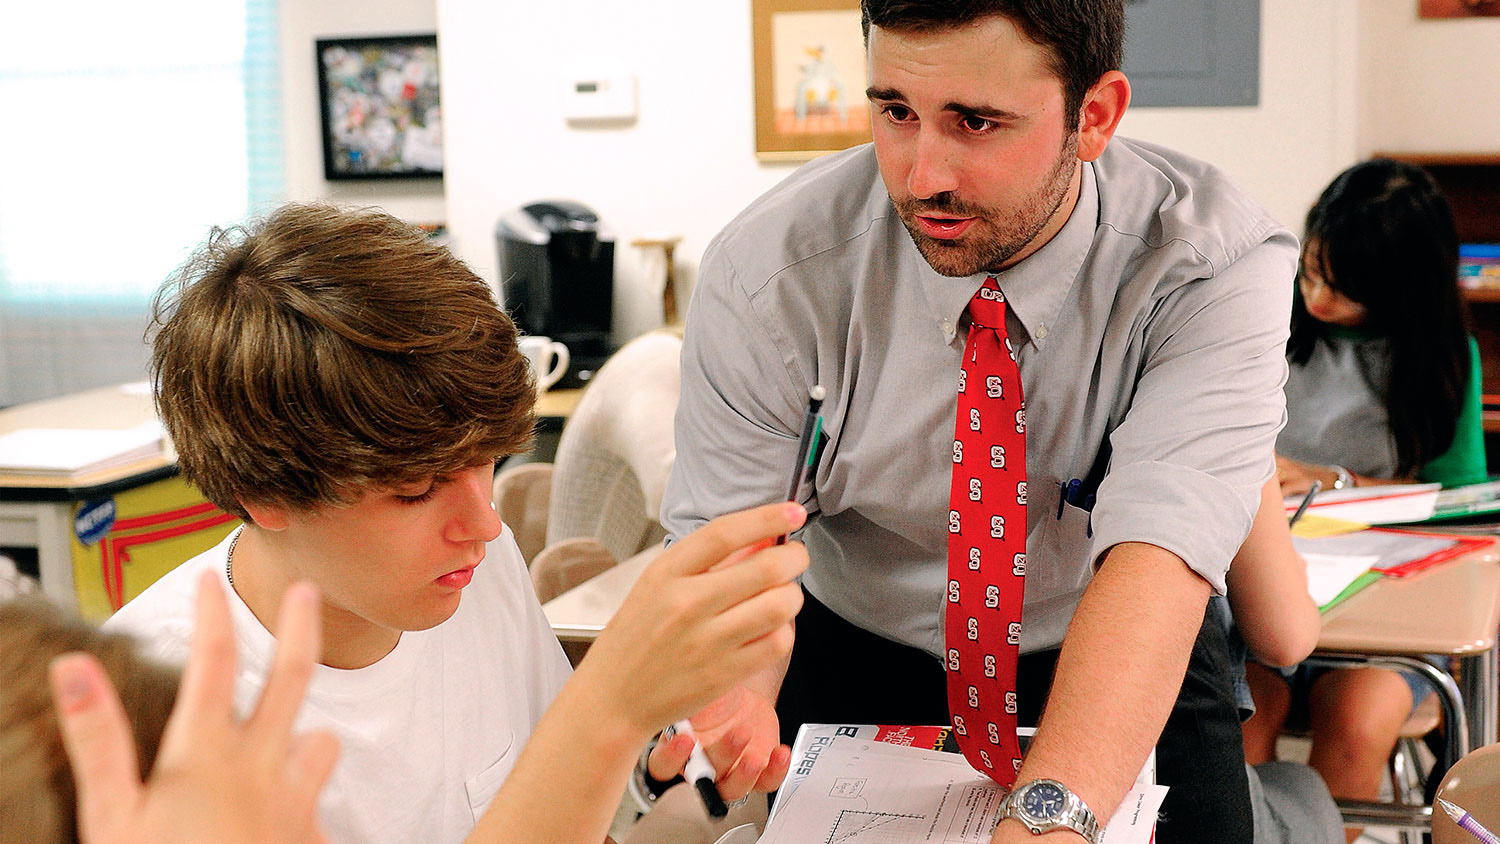 Teacher with student in classroom. Teacher is wearing an NCState themed tie.